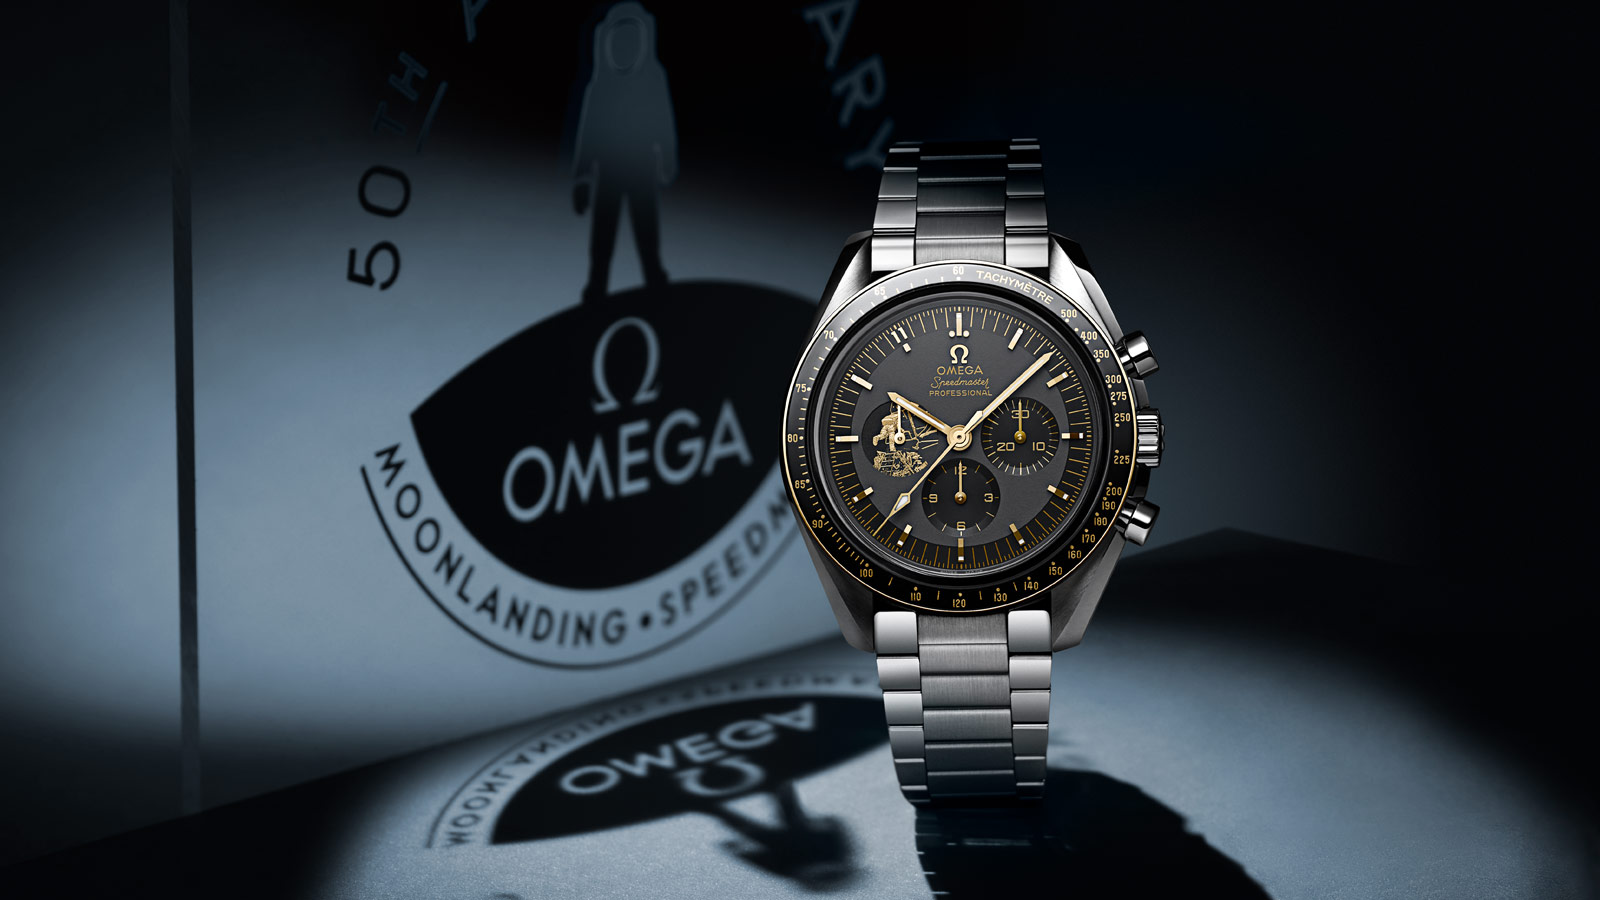 The OMEGA Moonwatch